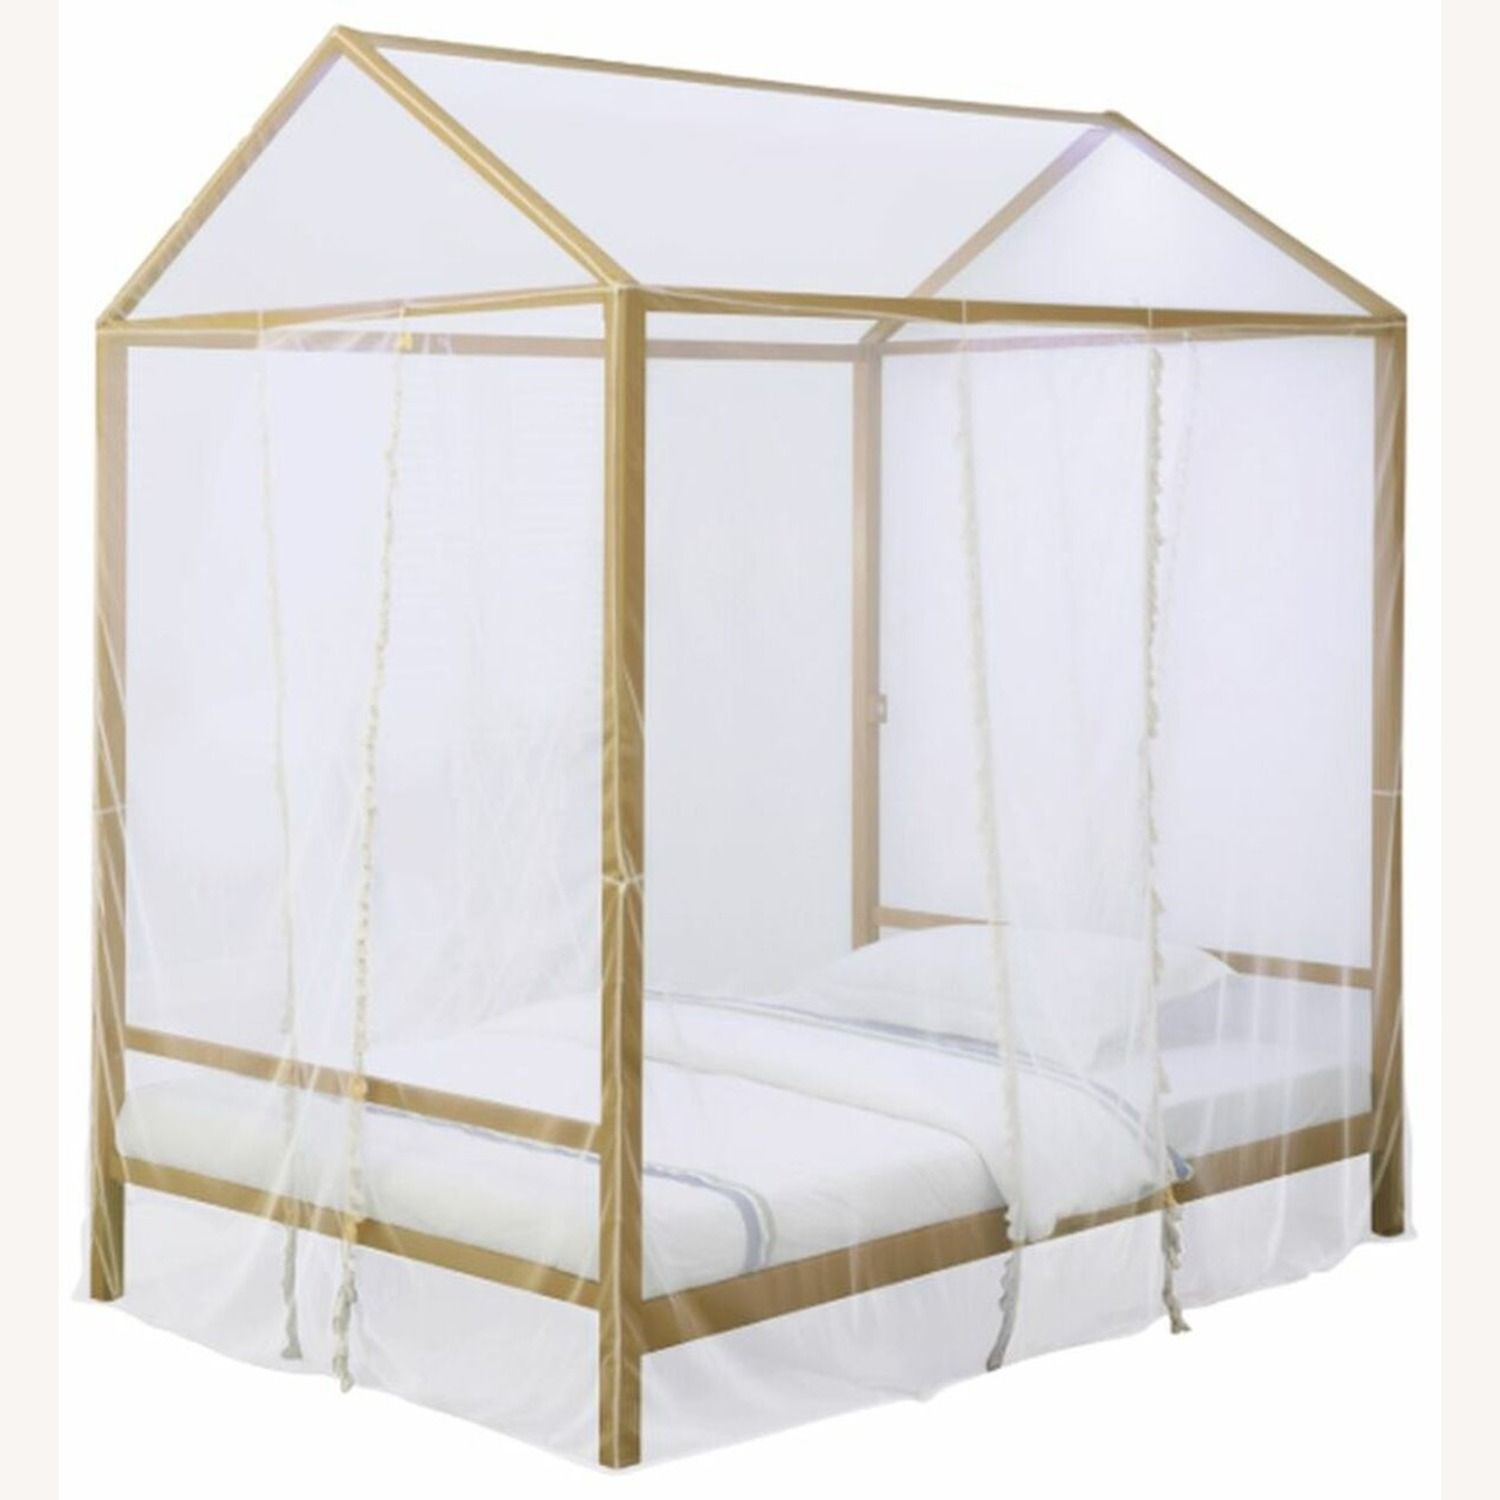 LED Full Tent Bed In Matte Gold W/ White Fabric - image-1